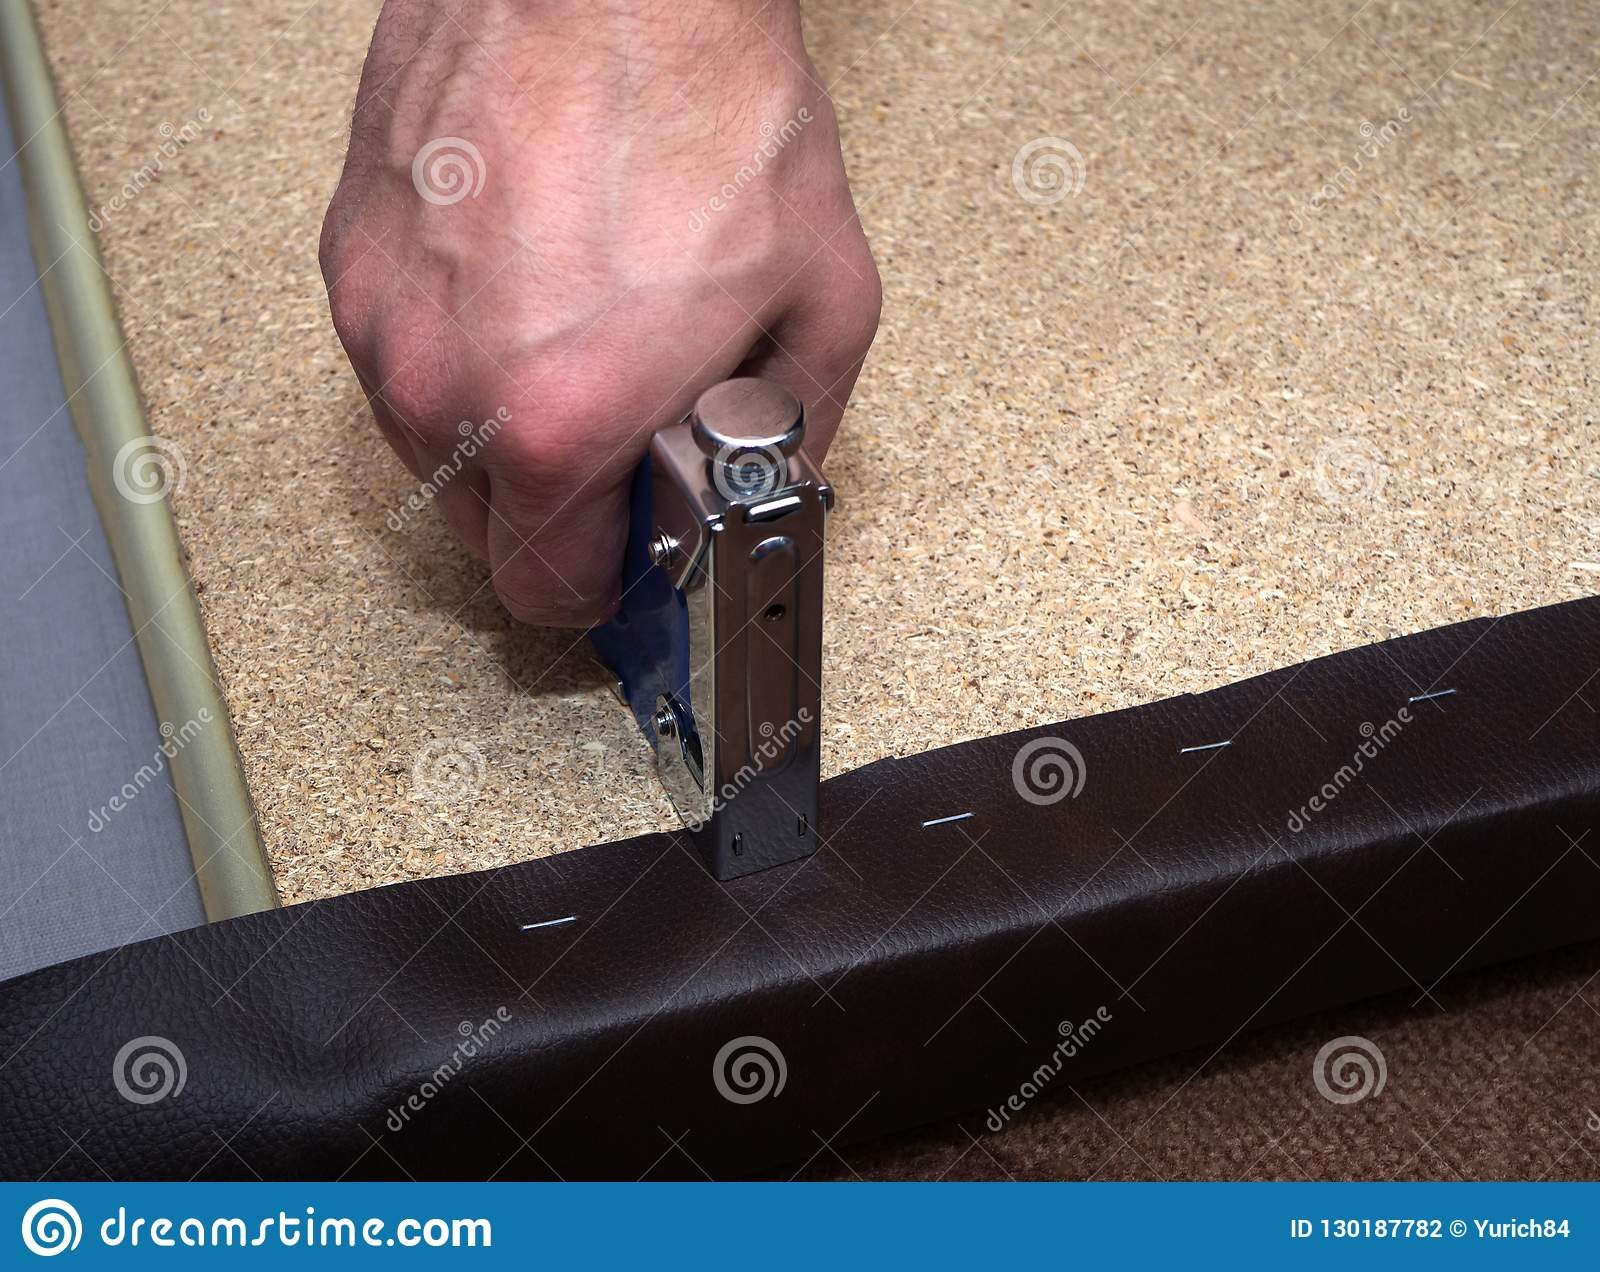 Man using hand-tool stapler and leatherette upholstering particle board